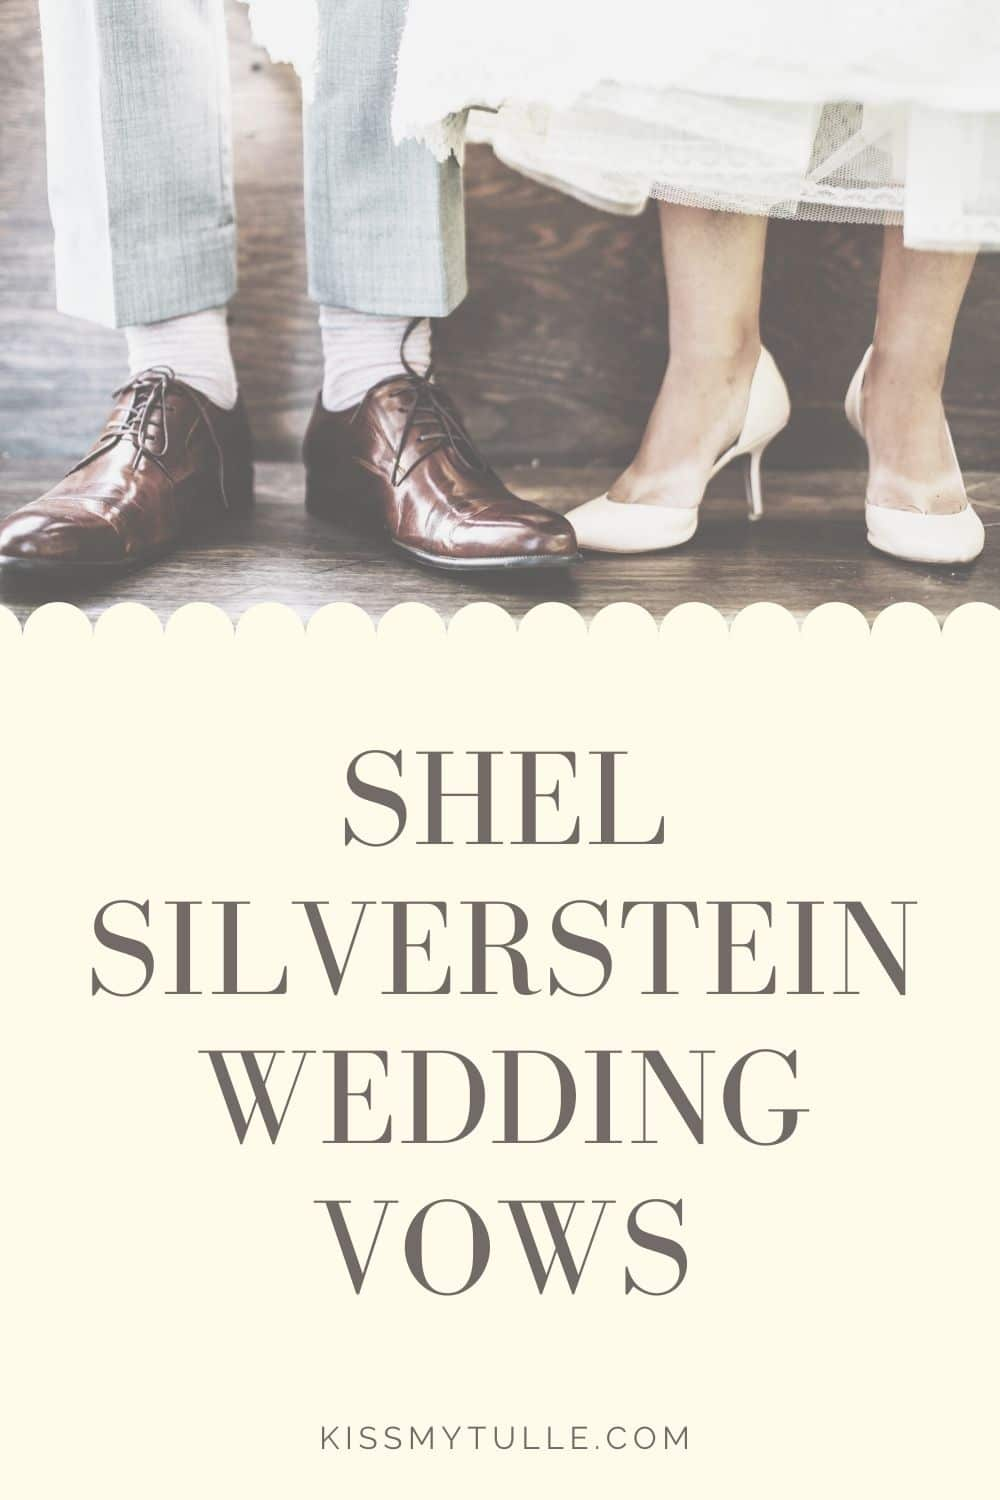 Looking for alternative readings or vows with a sweeter, more innocent lean? Well, here ya go! Some wedding vows - Shel Silverstein style!